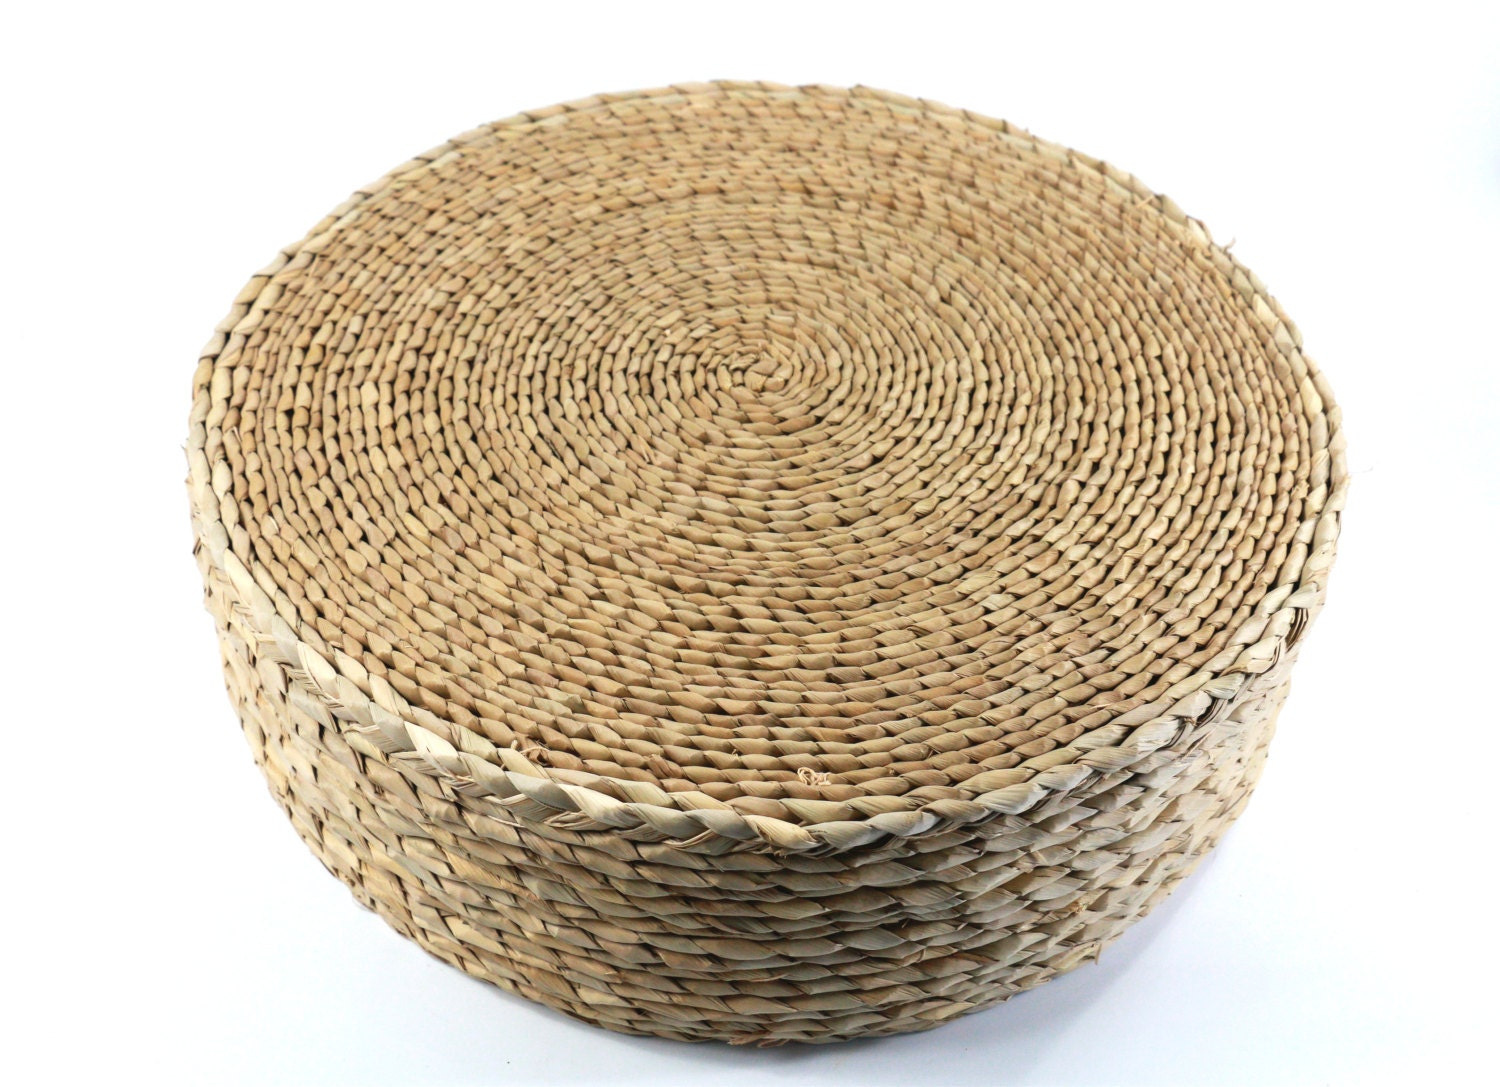 Straw round rustic floor cushion/ gift for by GrasShanghai on Etsy